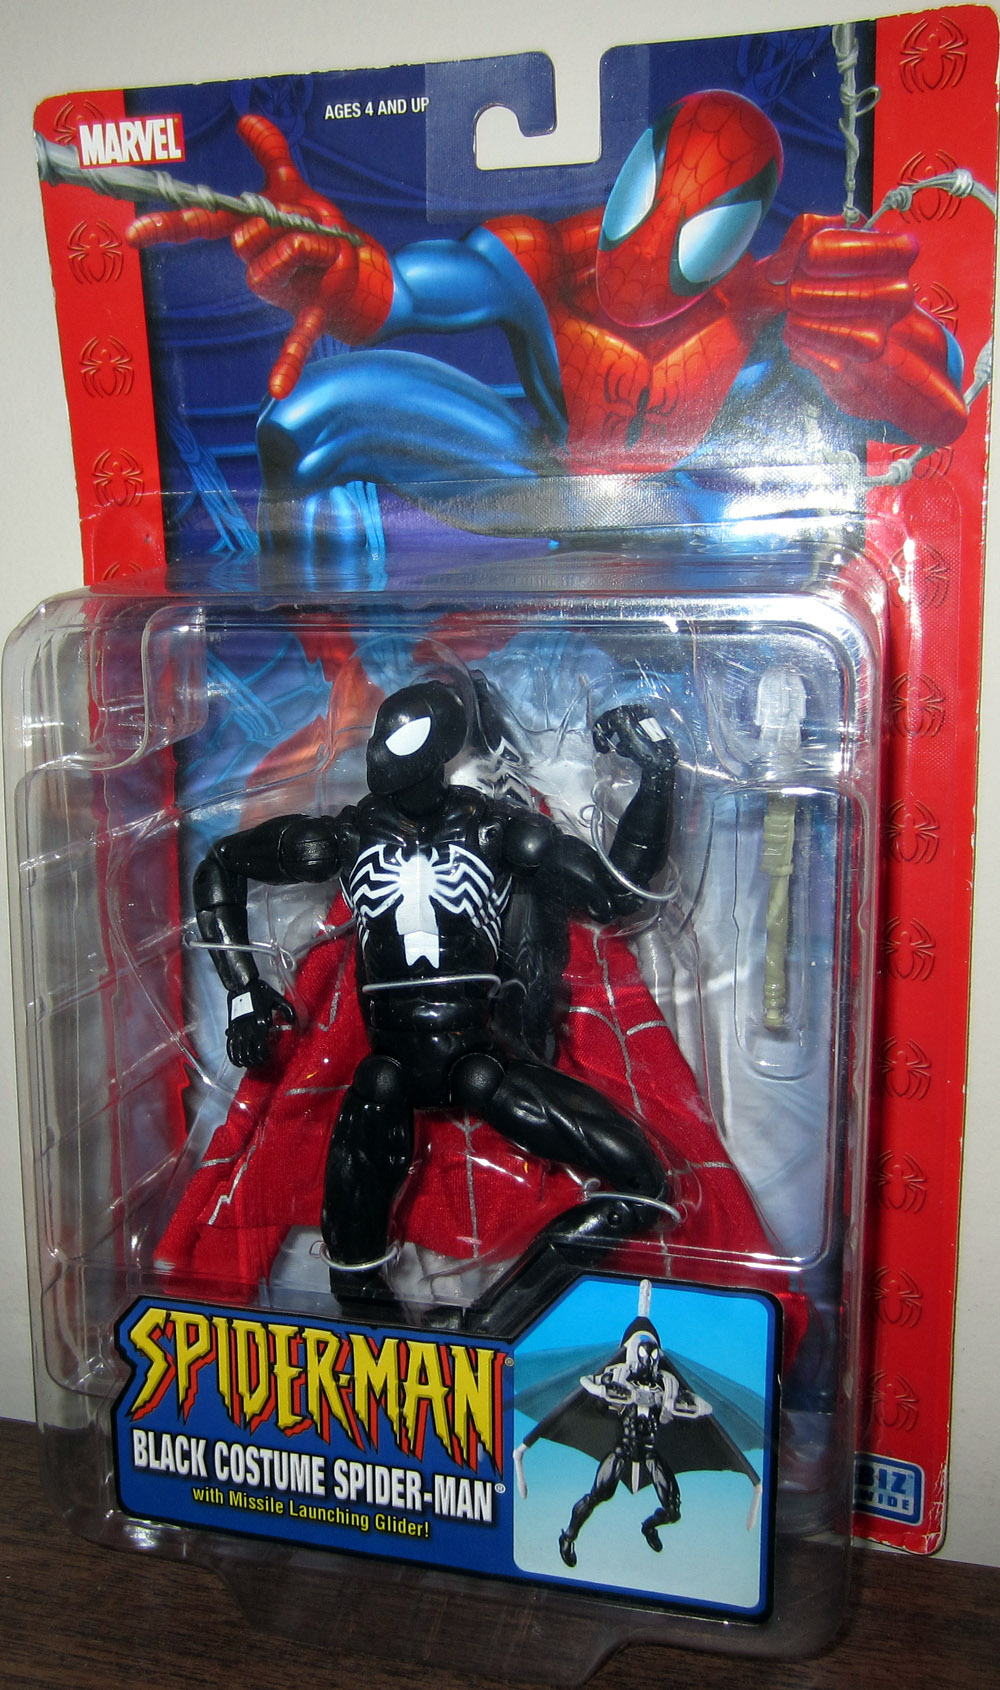 Black Costume Spider-Man with Missile Launching Glider (Classic)